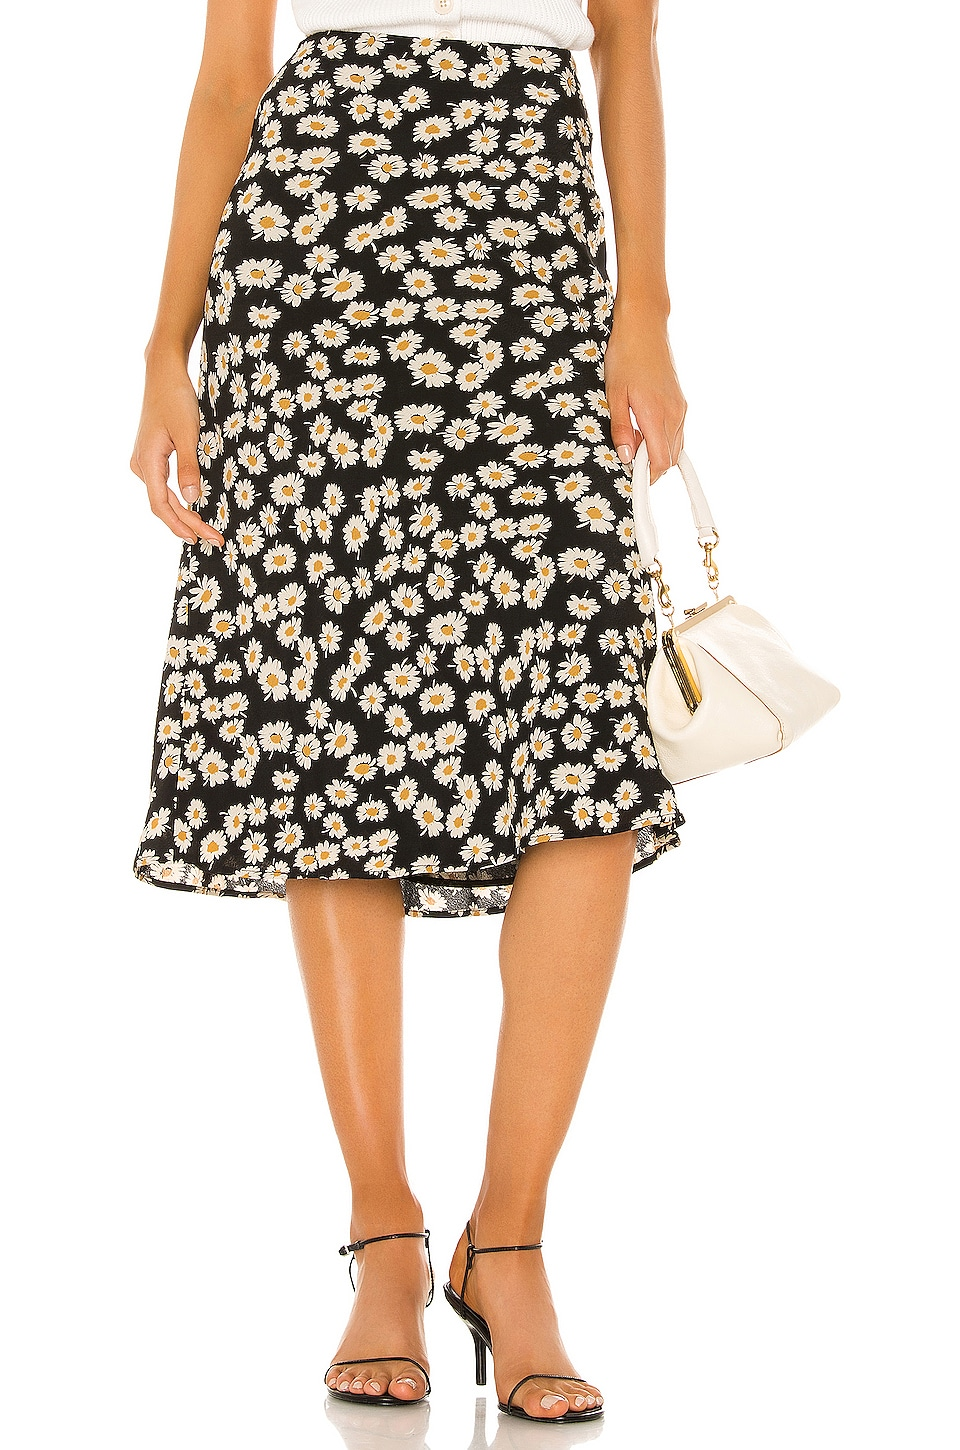 Rails London Skirt in Black Daisies